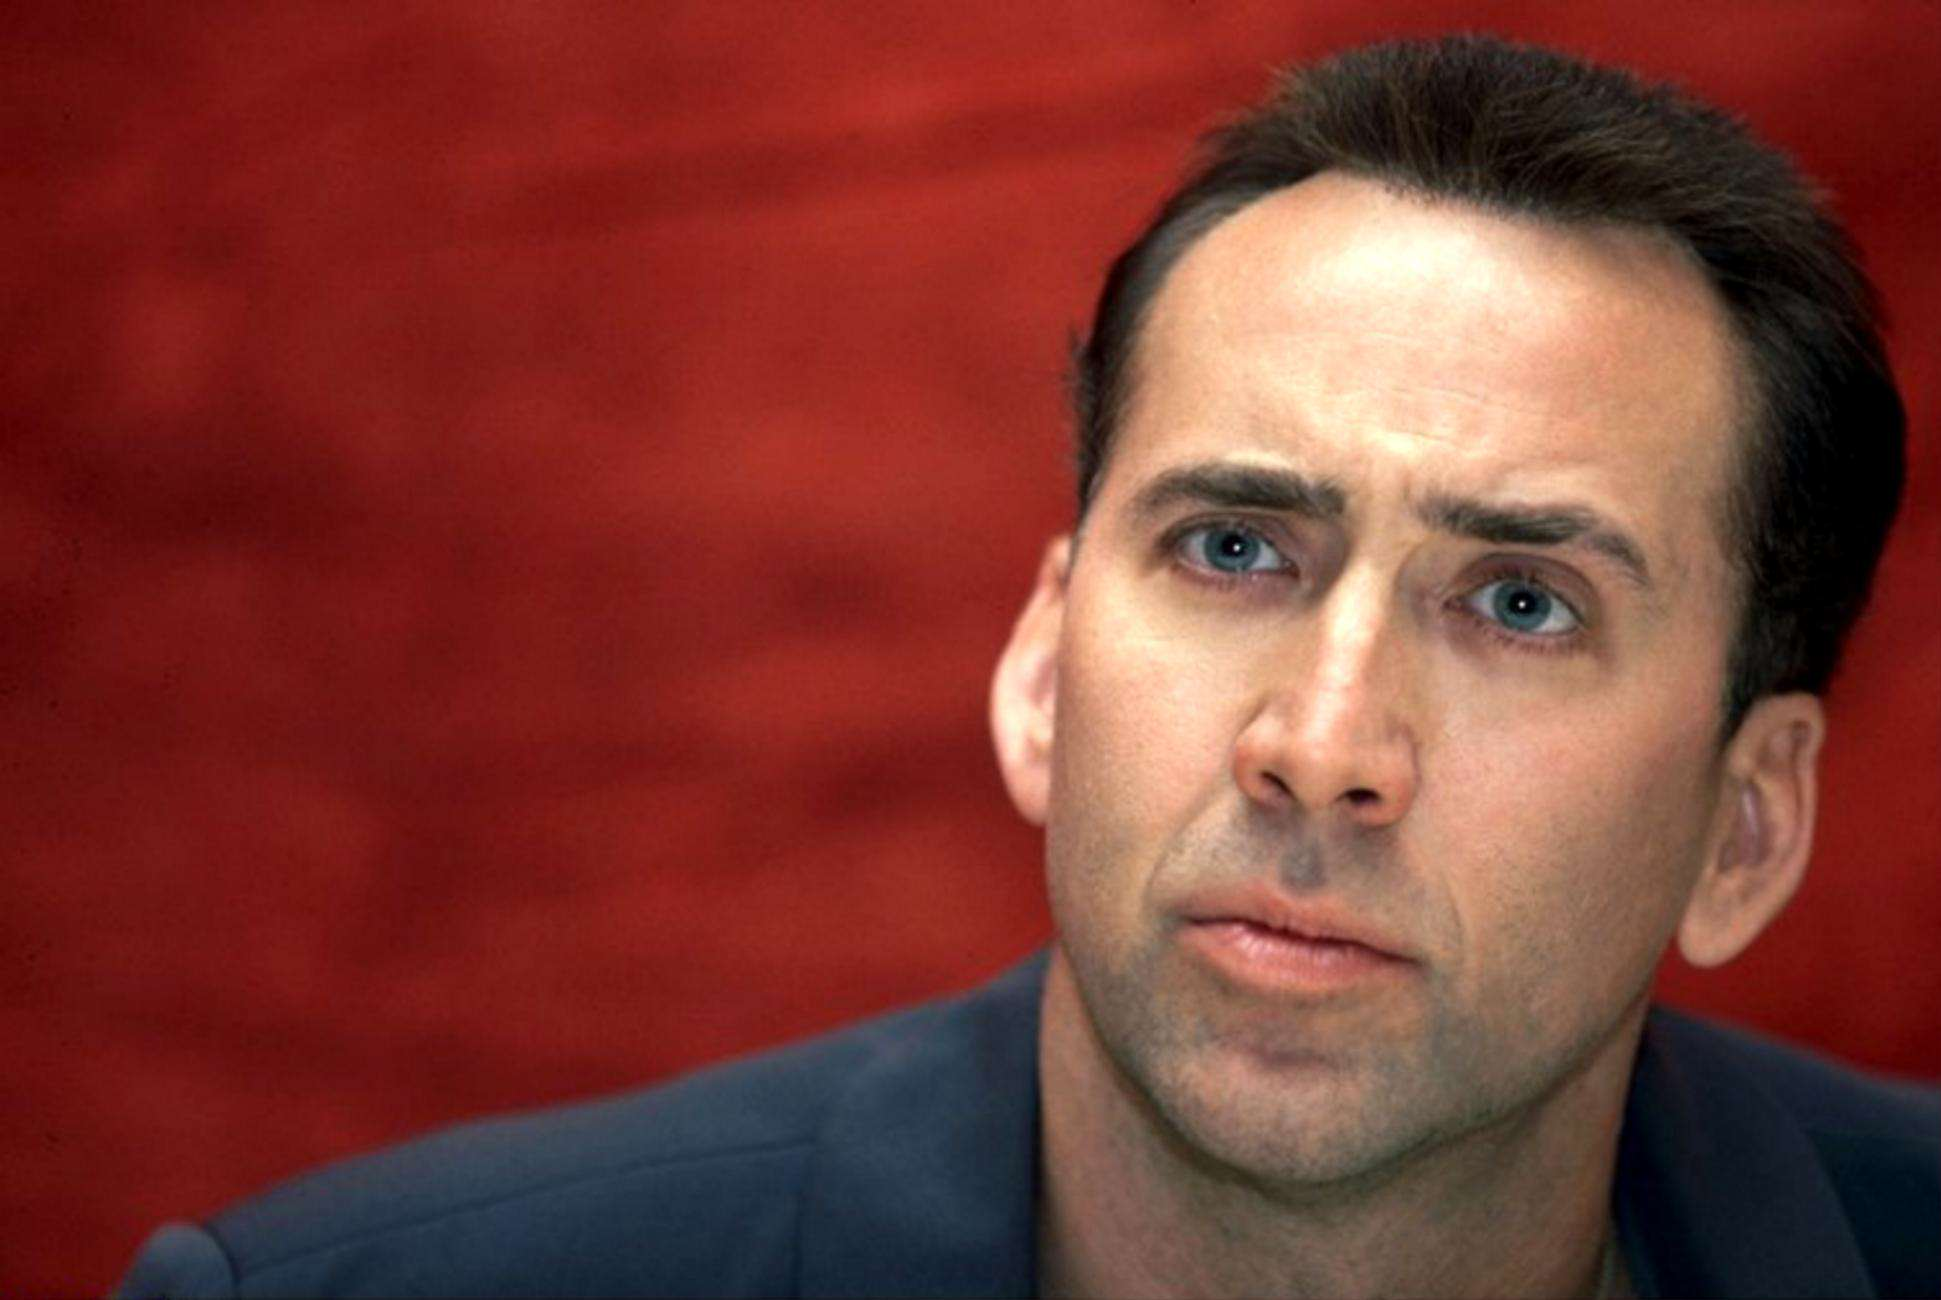 nicolas cage - photo #41